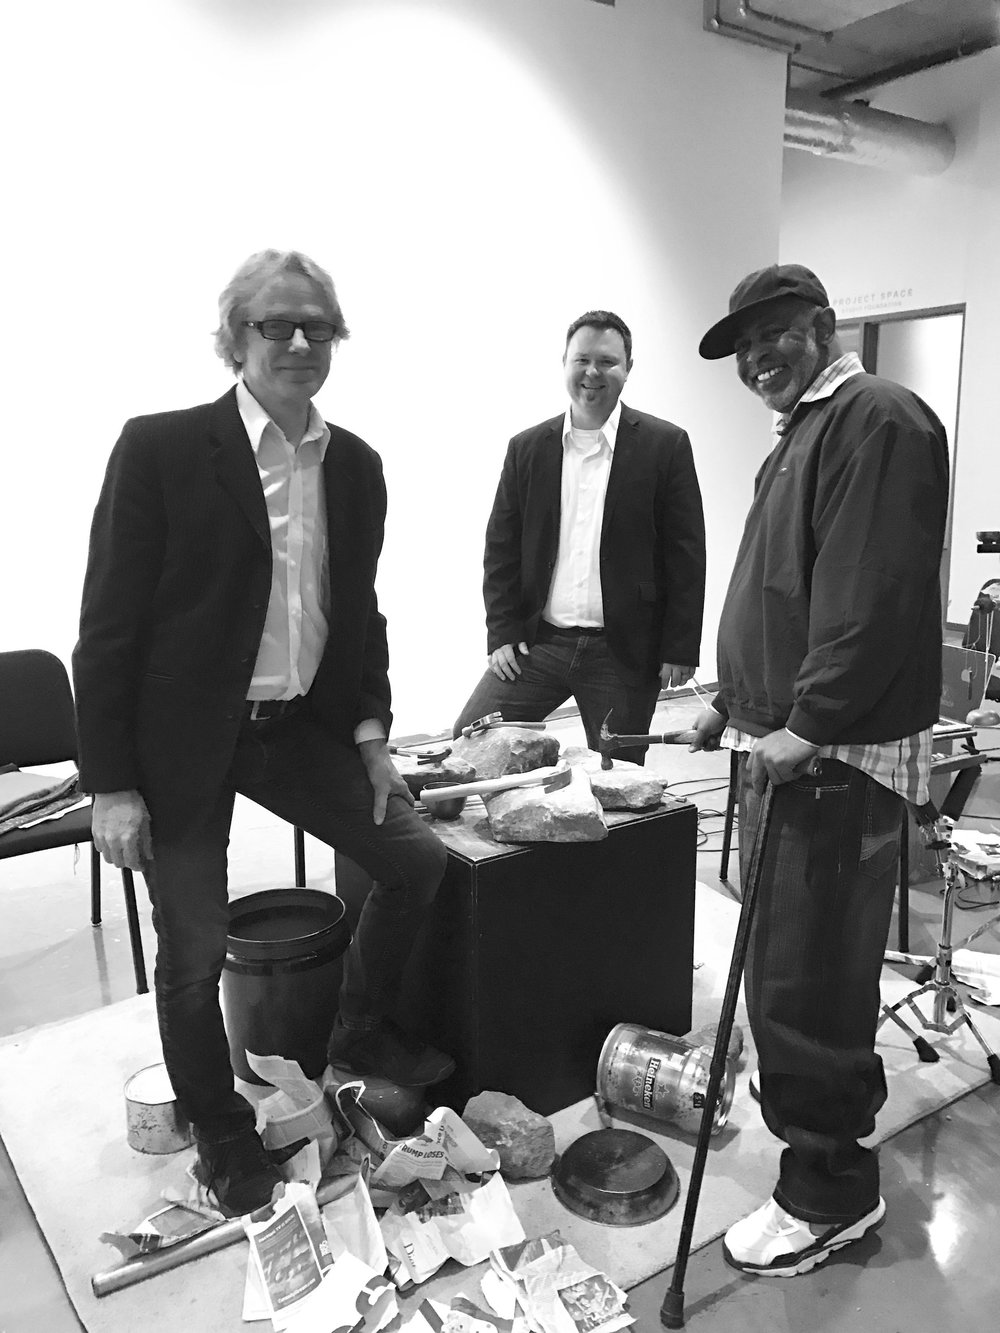 Allen Otte, John Lane, and Clarence Harrison (first person exonerated by the Georgia Innocents Project) University of Georgia Residency/Performance, 2017